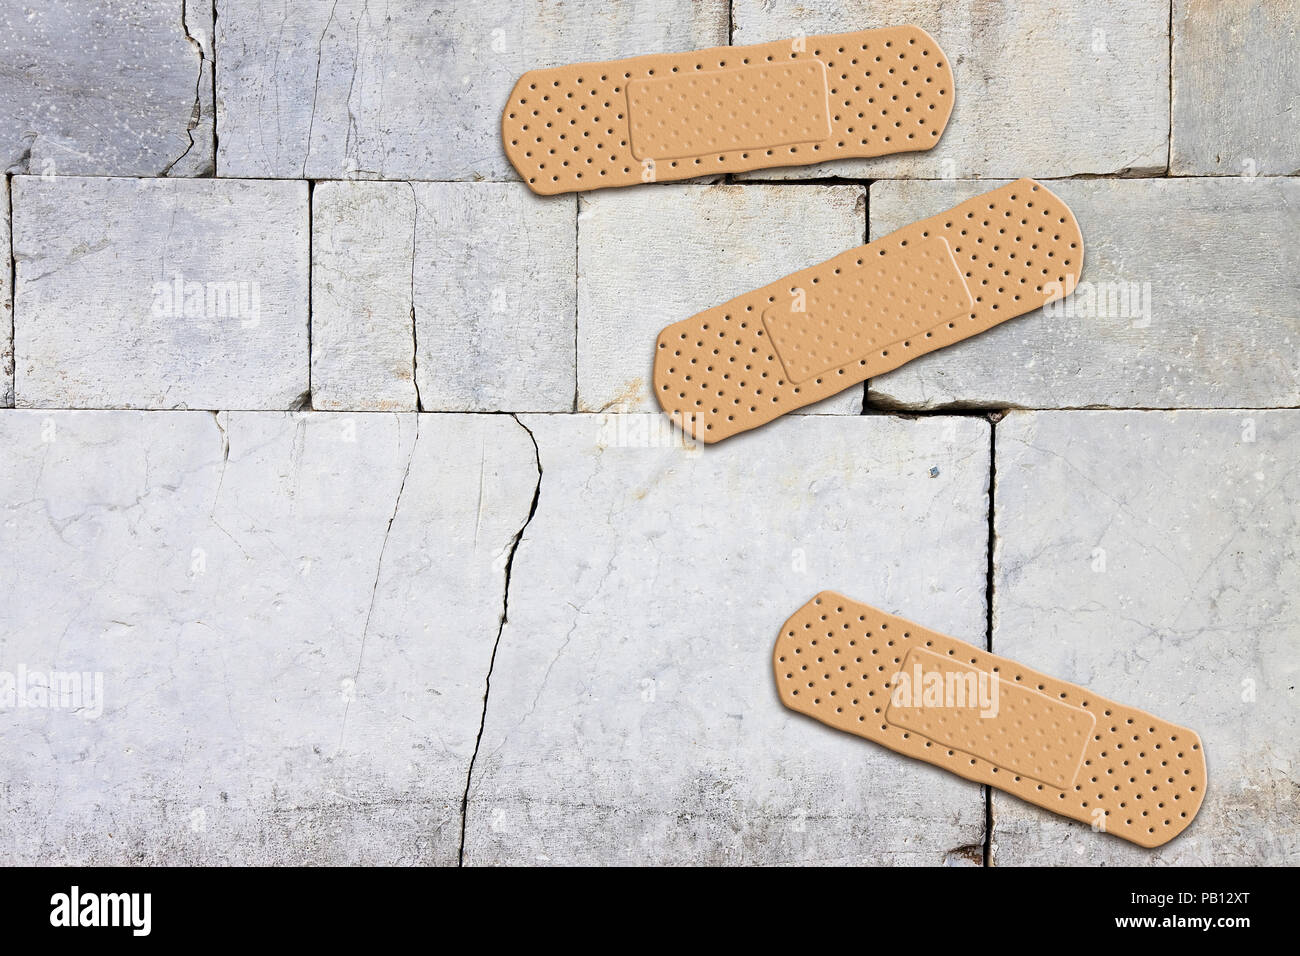 Renovation of an old stone wall- concept image with adhesive bandage - image with copy space - Stock Image